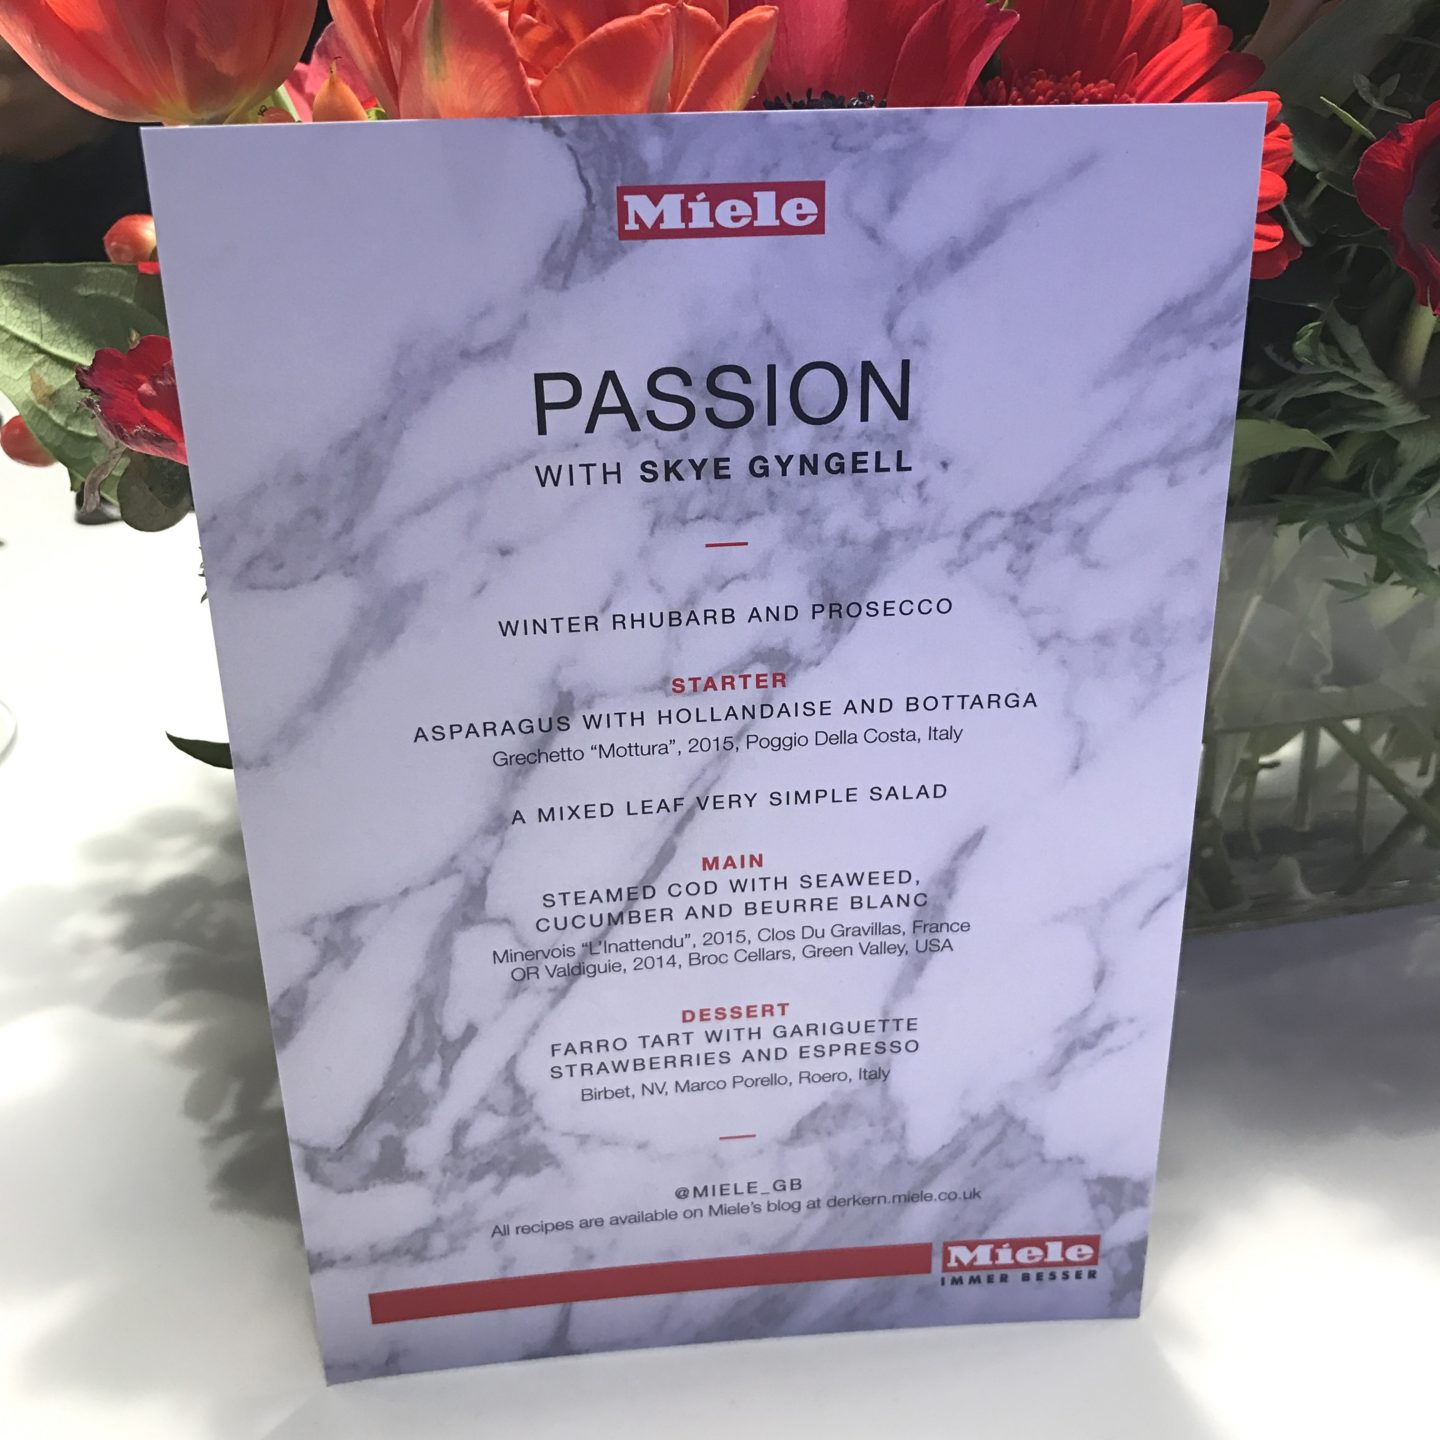 Miele Passion Menu